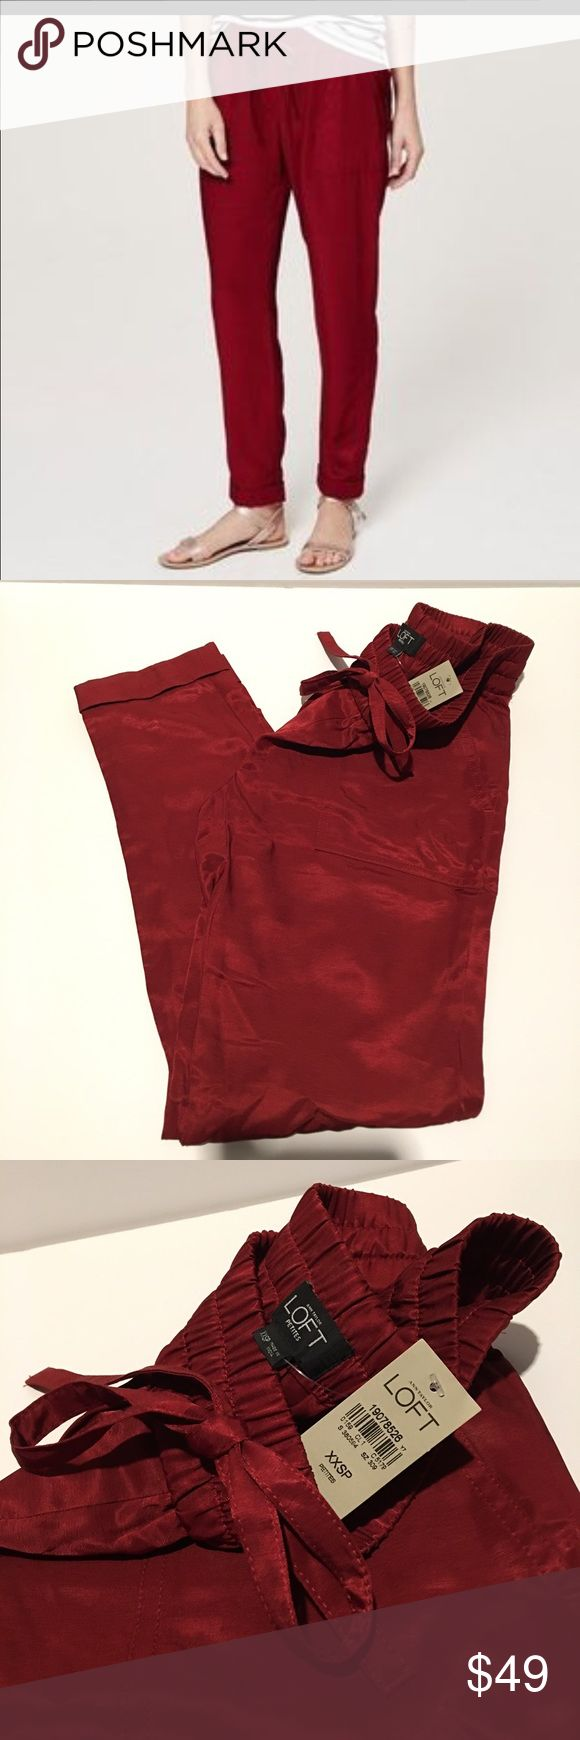 Ann Taylor LOFT- Red Jogger Pant Ann Taylor LOFT PETITES-NWT.  Red satin jogger, 100% Rayon.  Size XXSP. Super cute with sandals or loafers! LOFT Pants Track Pants & Joggers